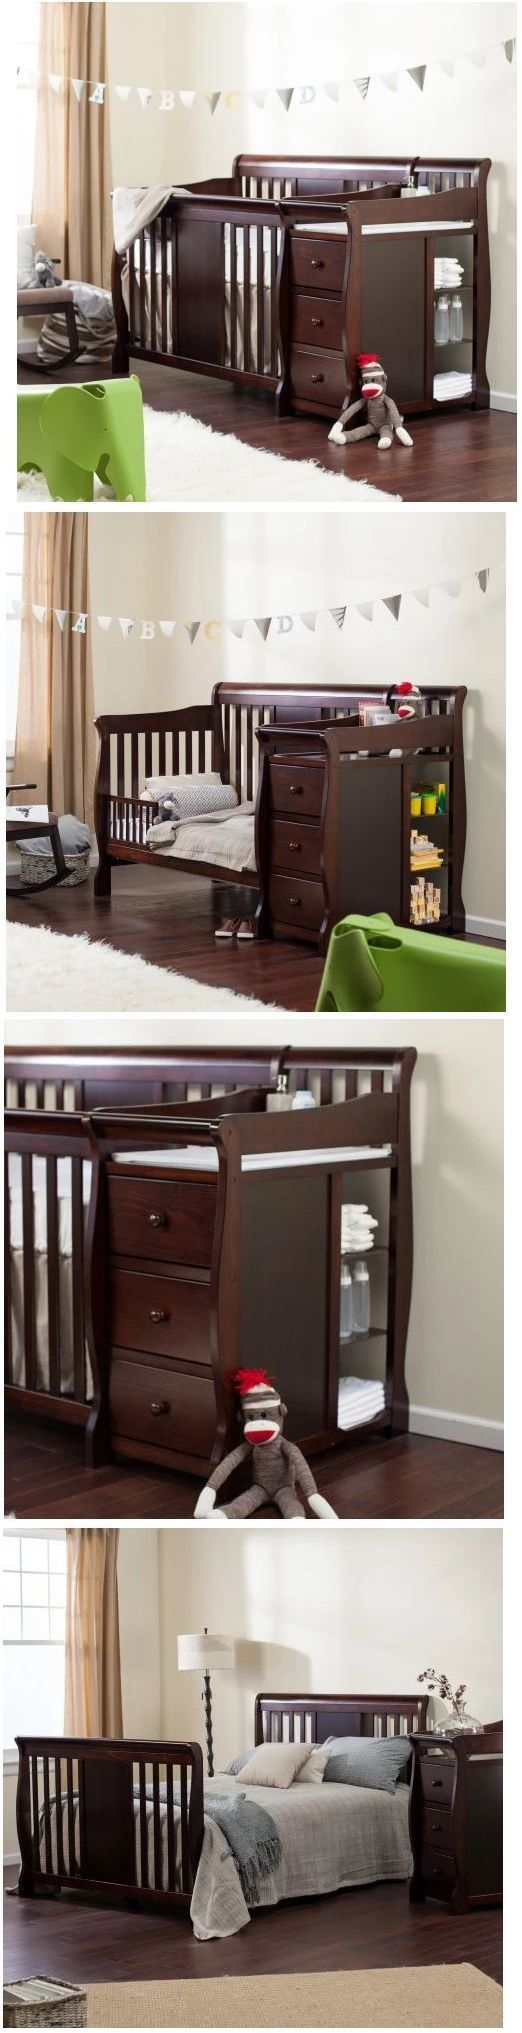 Brookfield fixed gate crib for sale - Baby Nursery Baby Crib With Changing Table Toddler Bed Daybed Full Size Bed Storage Drawers